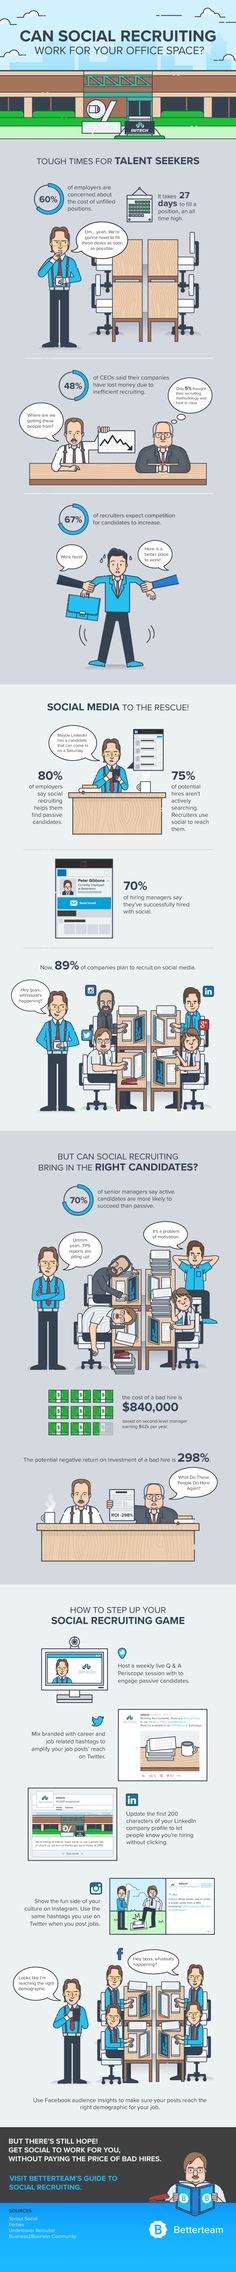 94% of recruiters use social media to attract talent - #social #recruiting facts via @betterteamapp